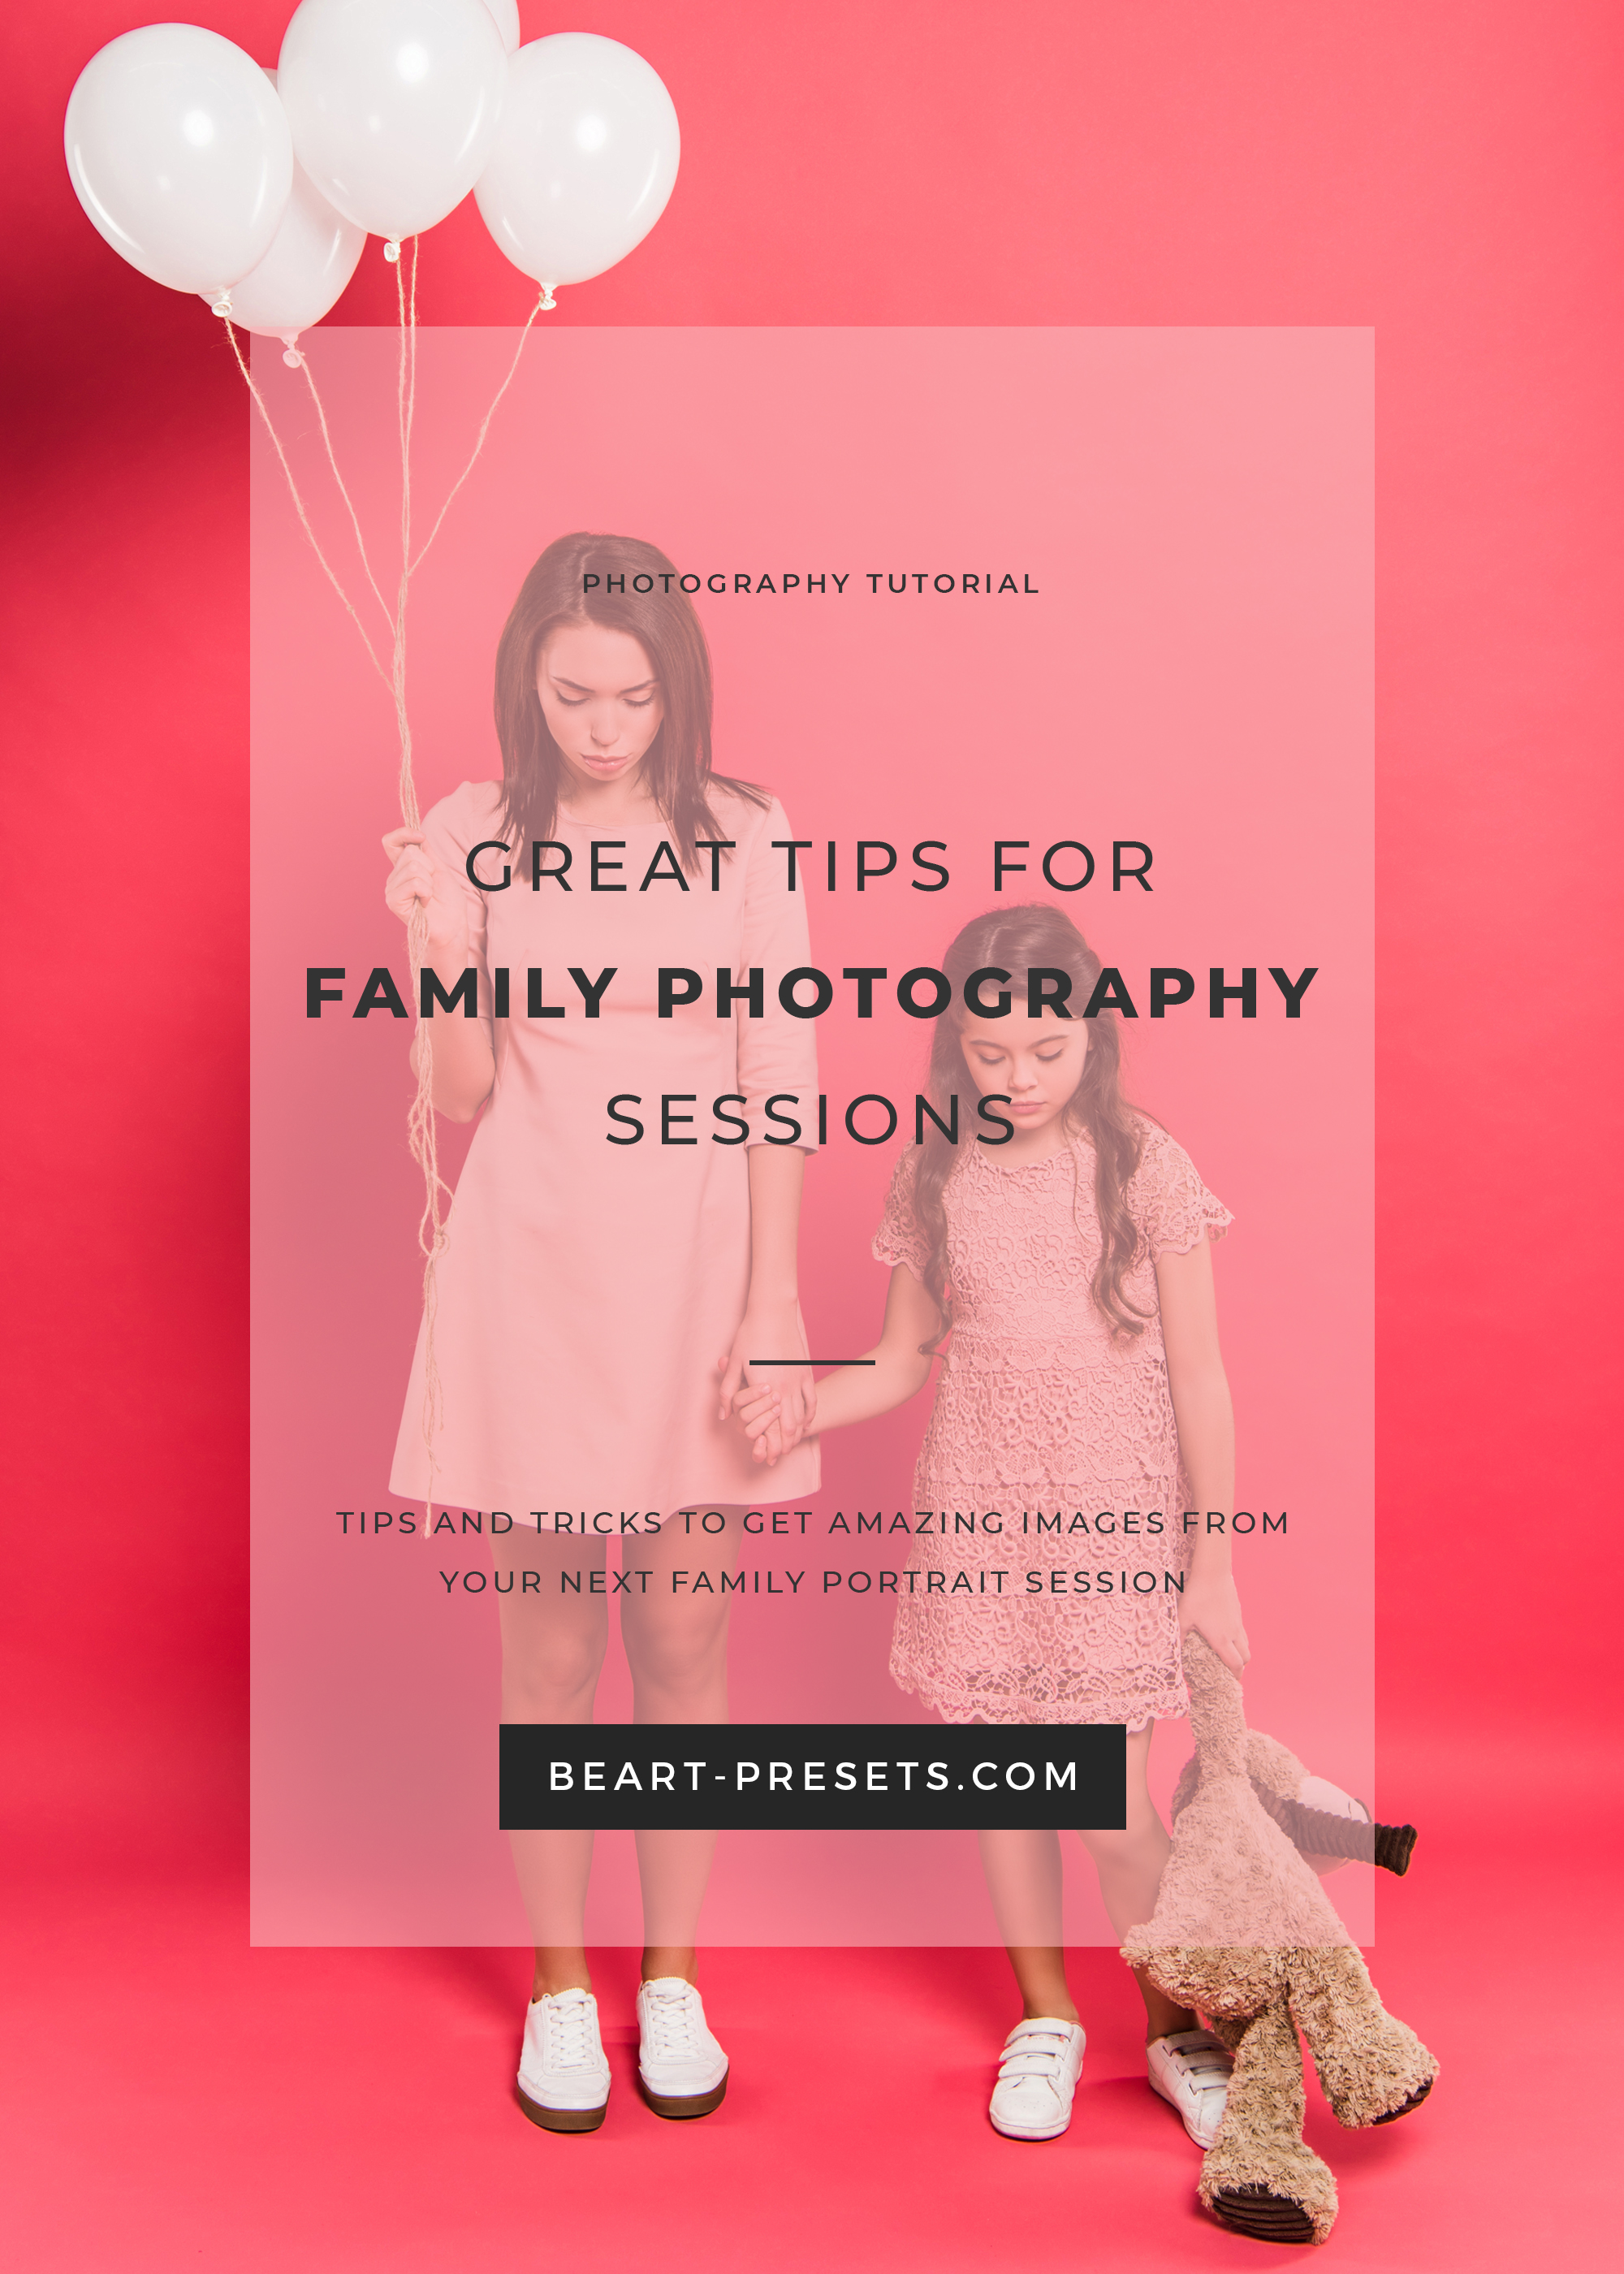 GREAT-TIPS-FOR-FAMILY-PHOTOGRAPHY